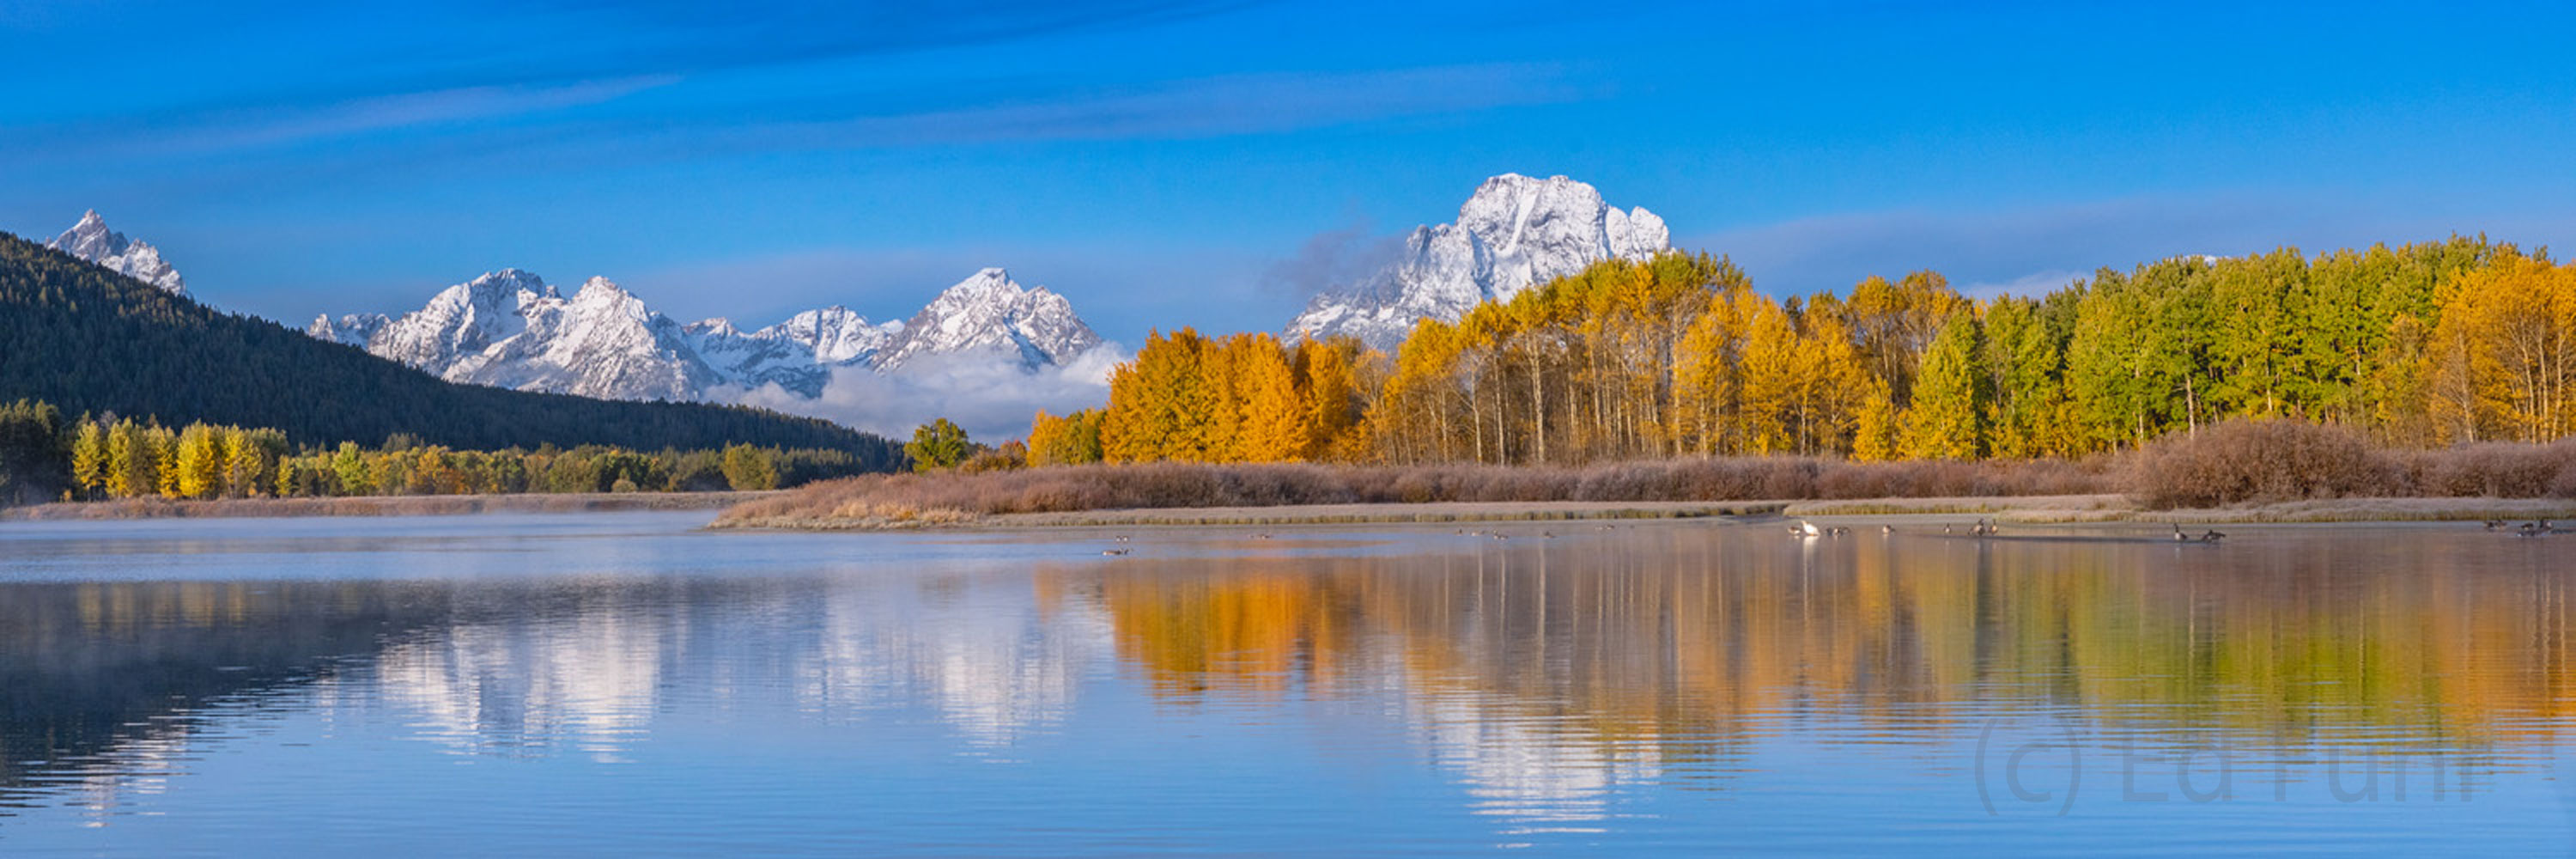 Autumn sunrise at Oxbow Bend with the aspen peaking and fresh snow on Mount Moran make for a magical morning to remember.